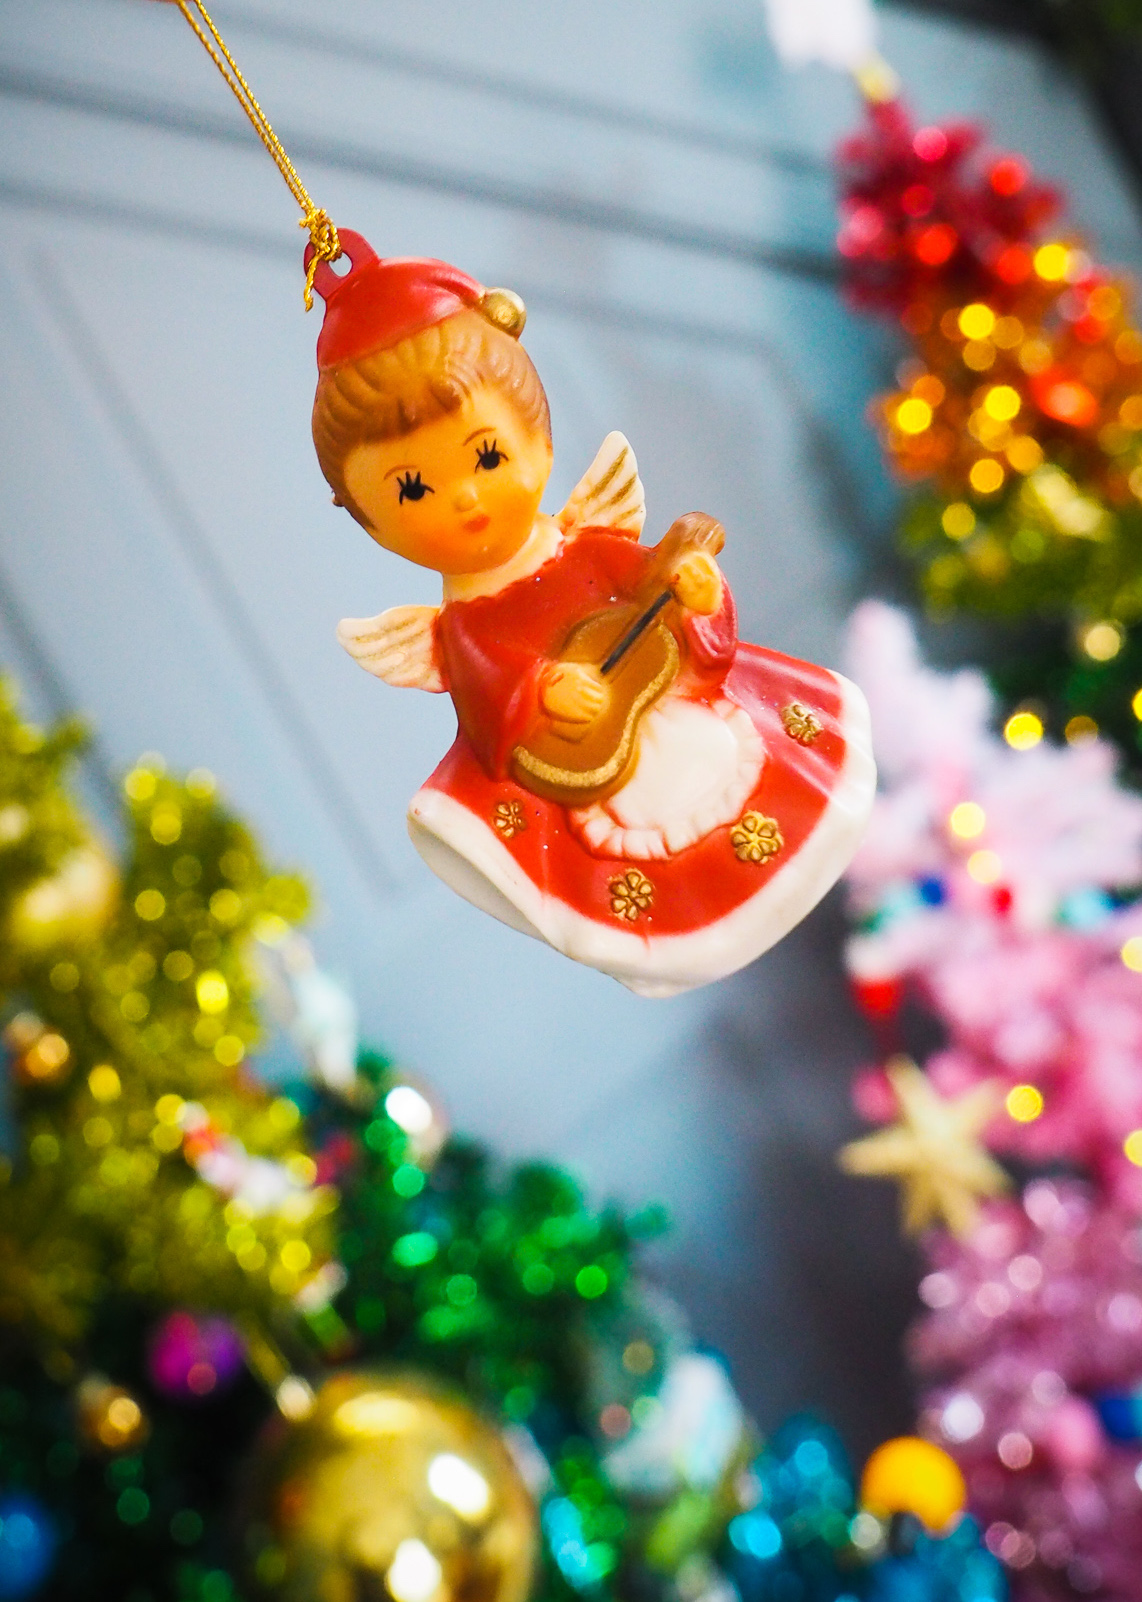 vintage-christmas-decorations-charity-shop-thrift-store-review-haul-retro-angel-choir-boy